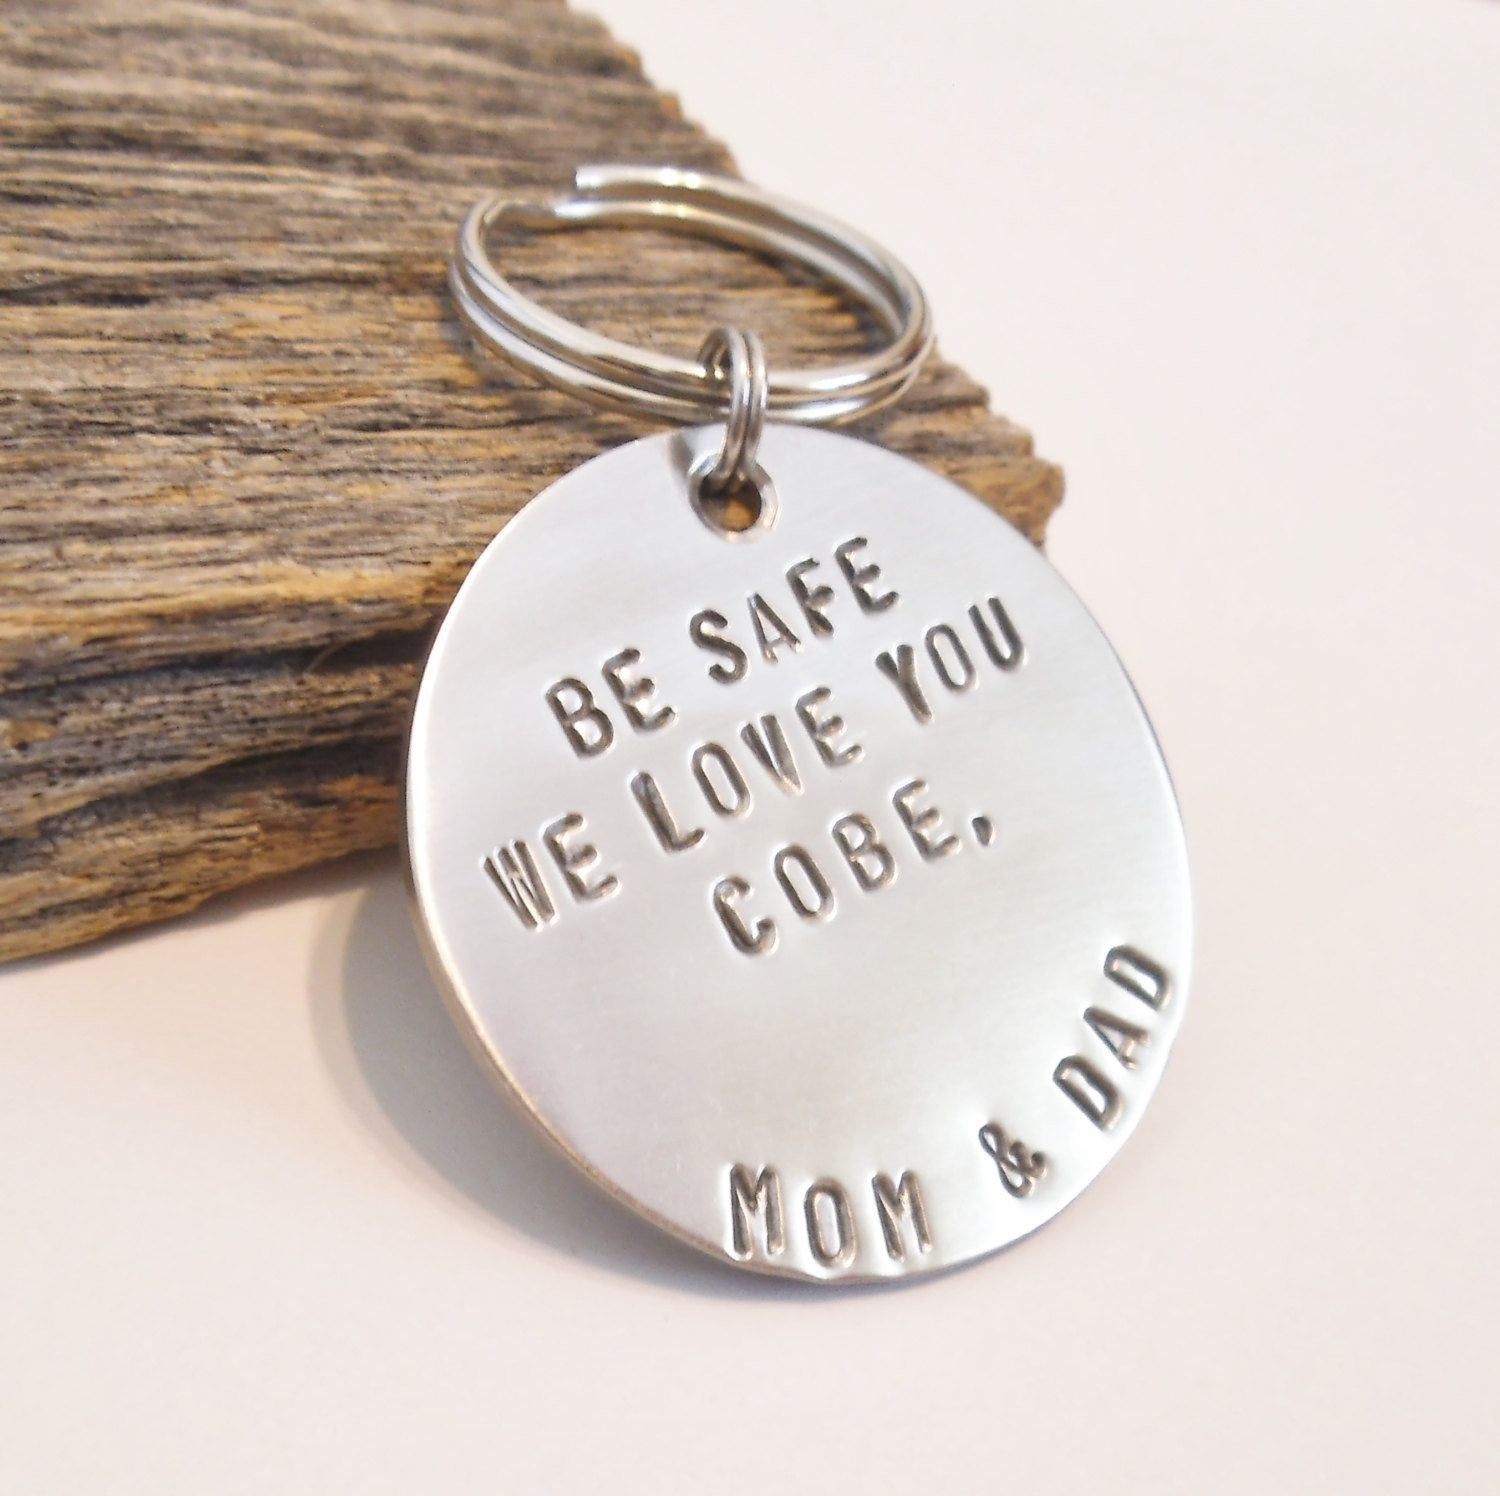 Graduation Gift Ideas For Daughter  10 Fashionable High School Graduation Gift Ideas For